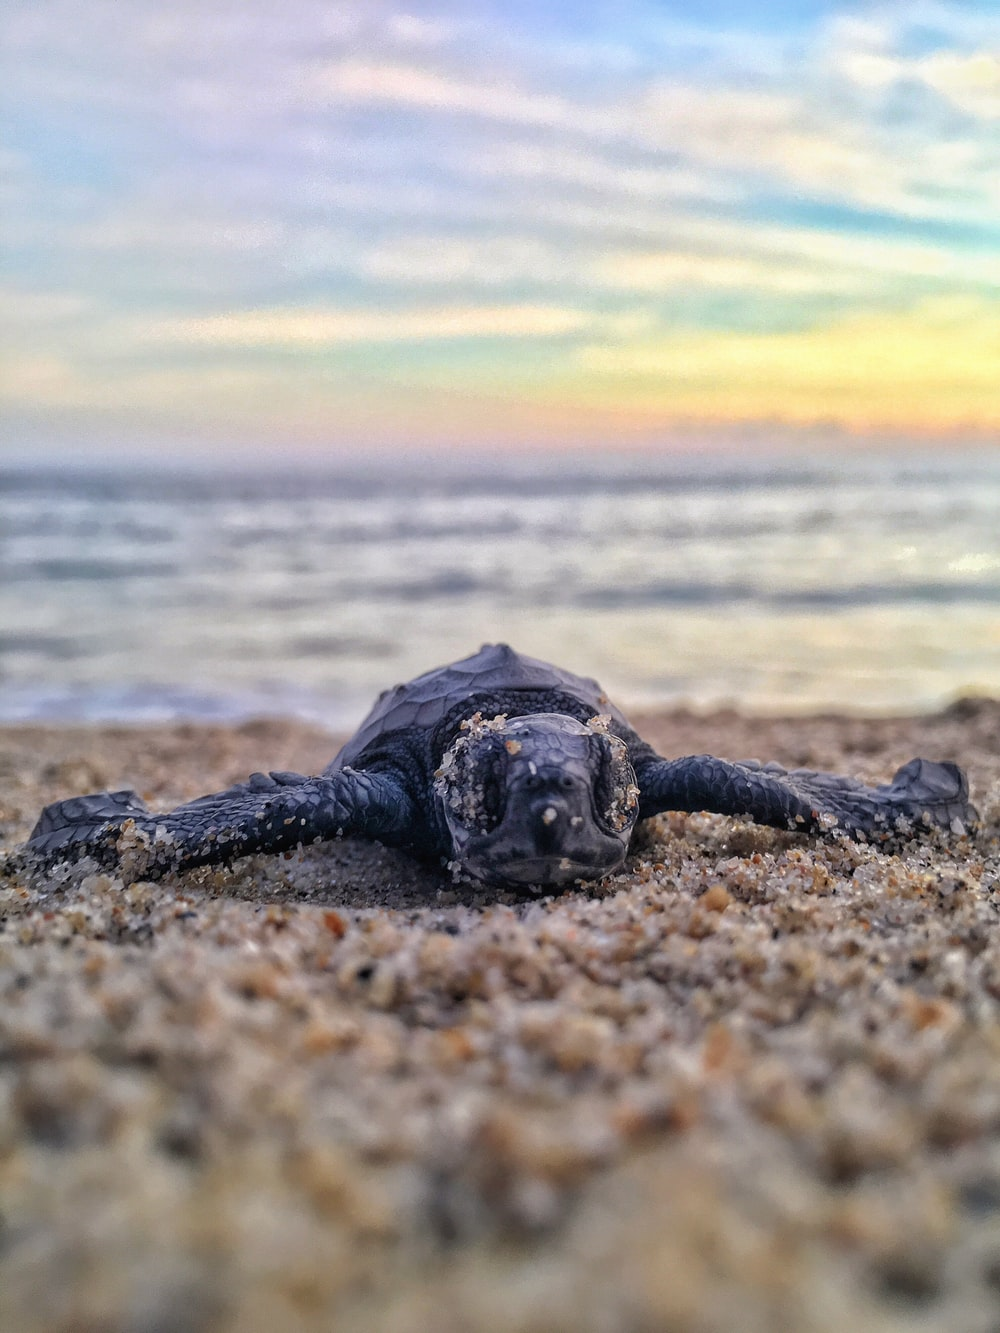 500 Baby Sea Turtle Pictures Hd Download Free Images On Unsplash